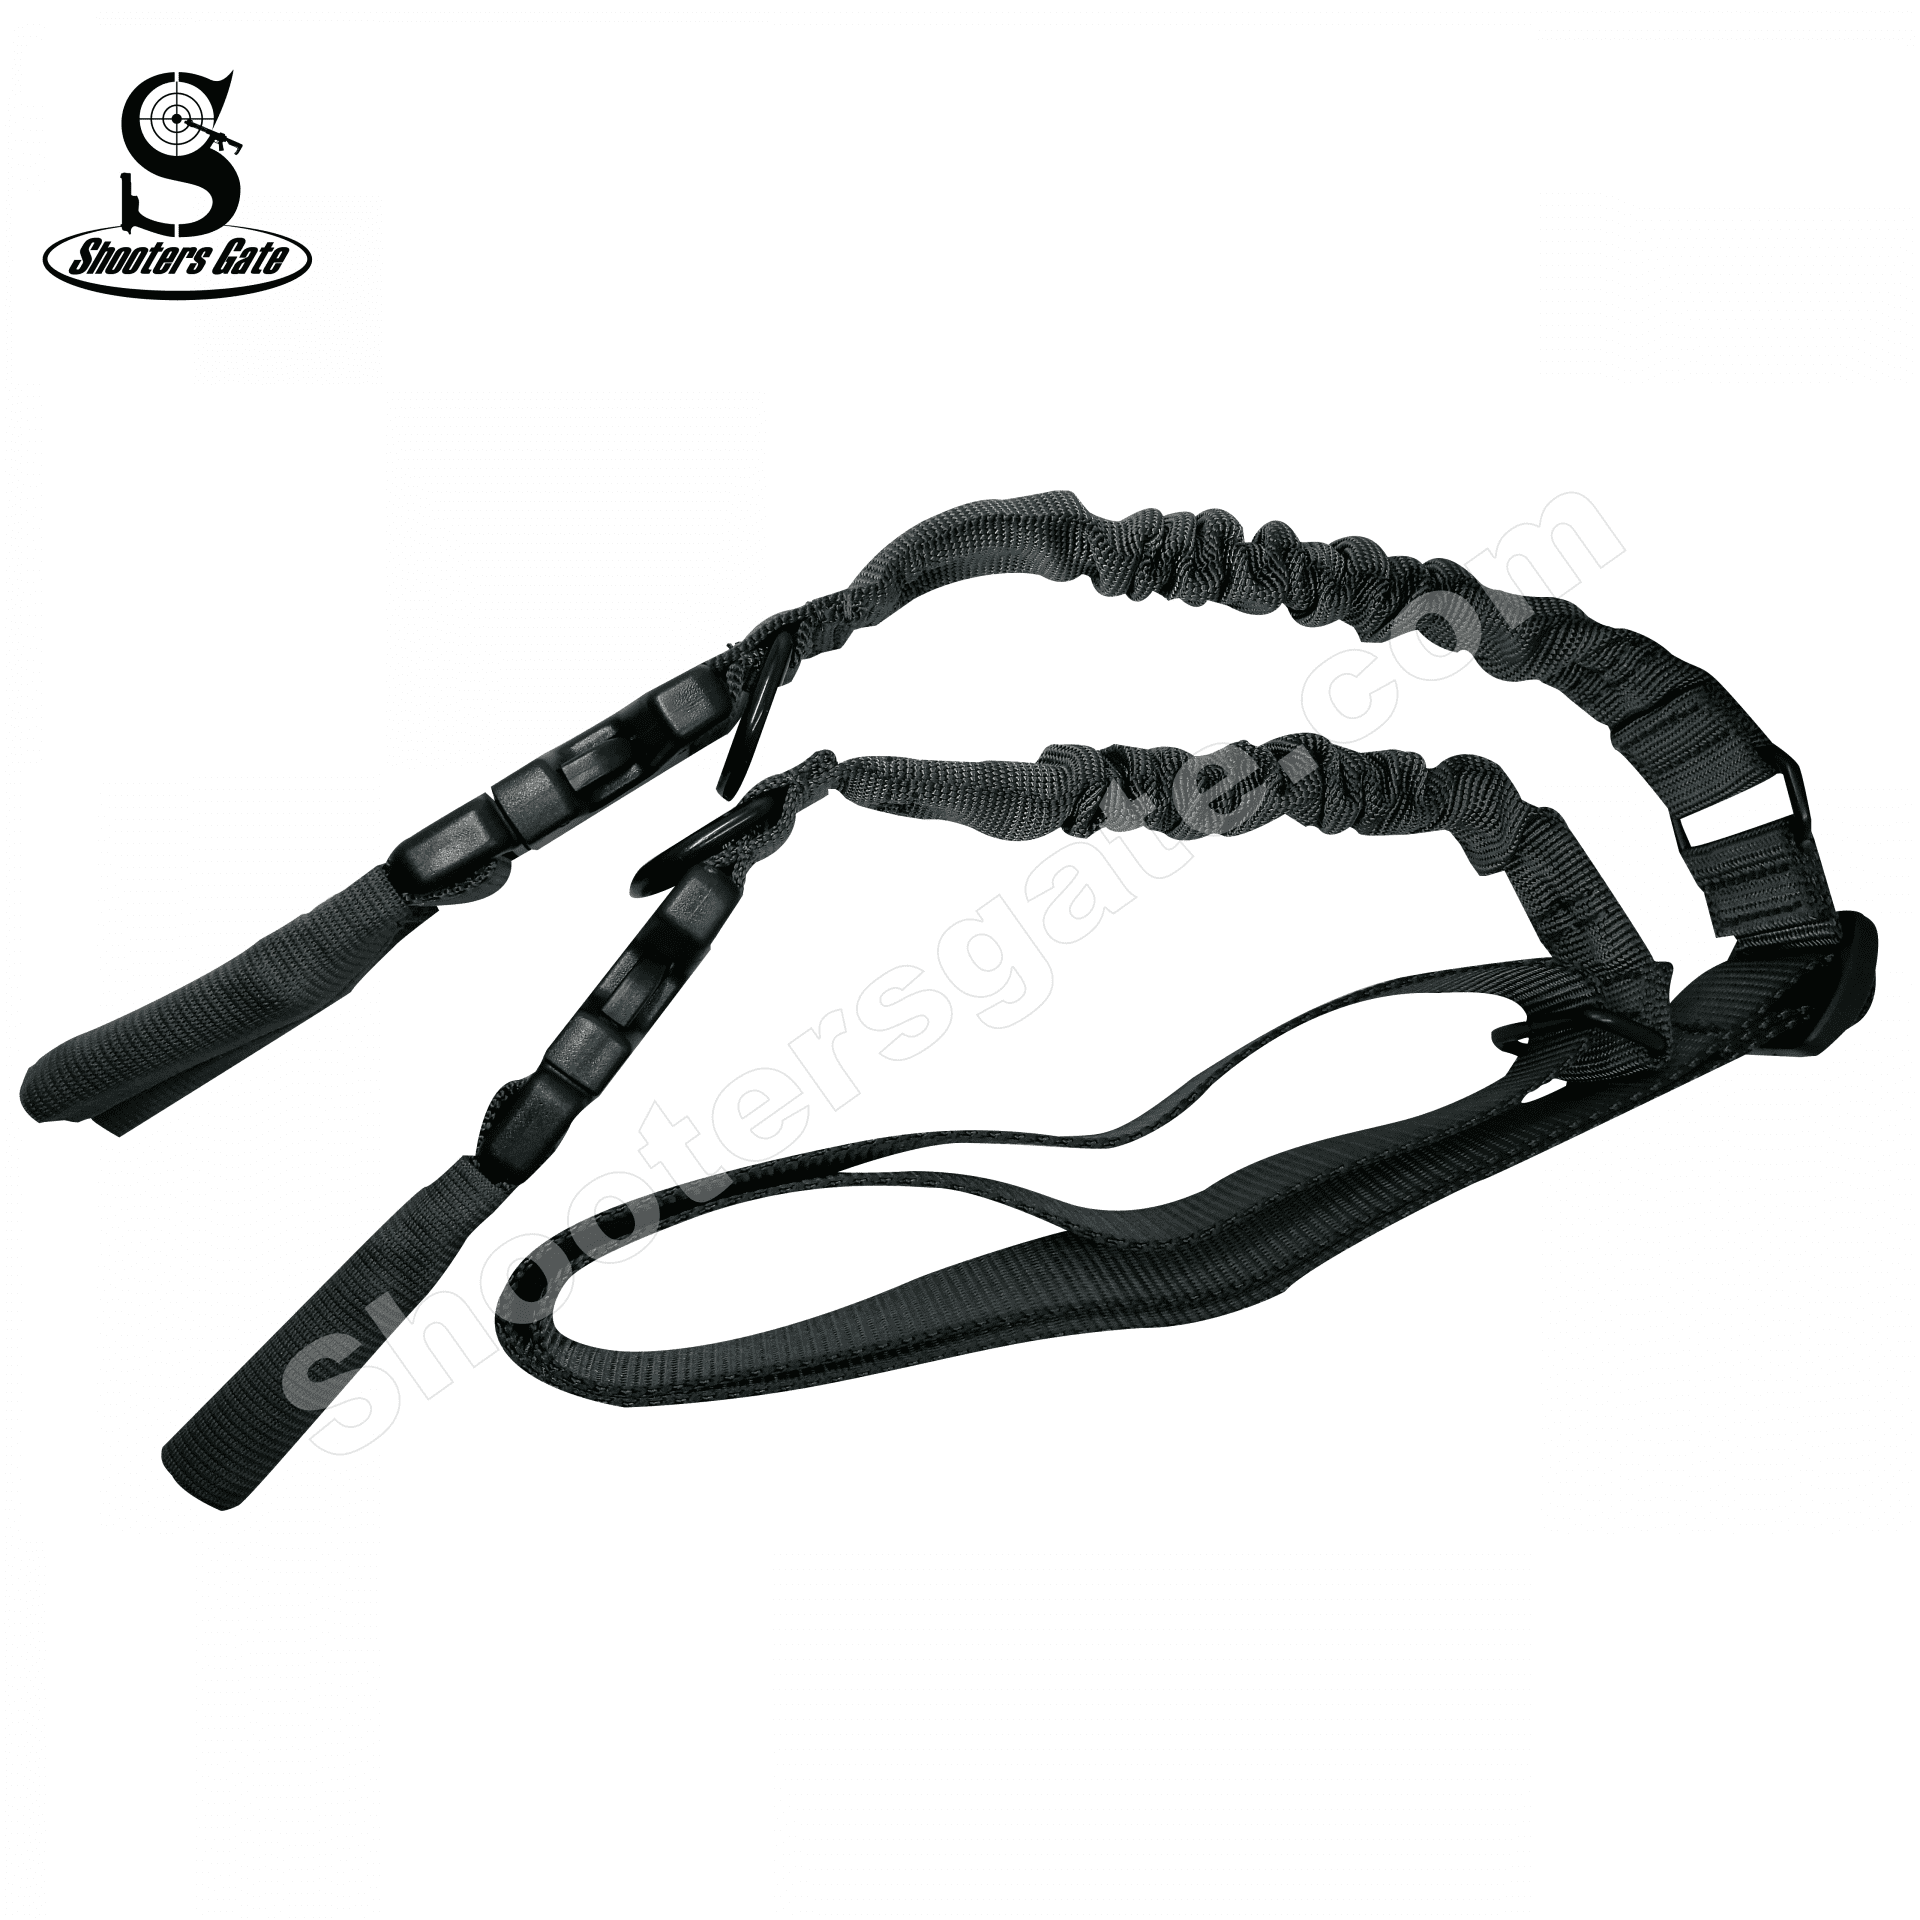 Shootersgate PRO QD Single/Double Point  Bungee Sling - GREY